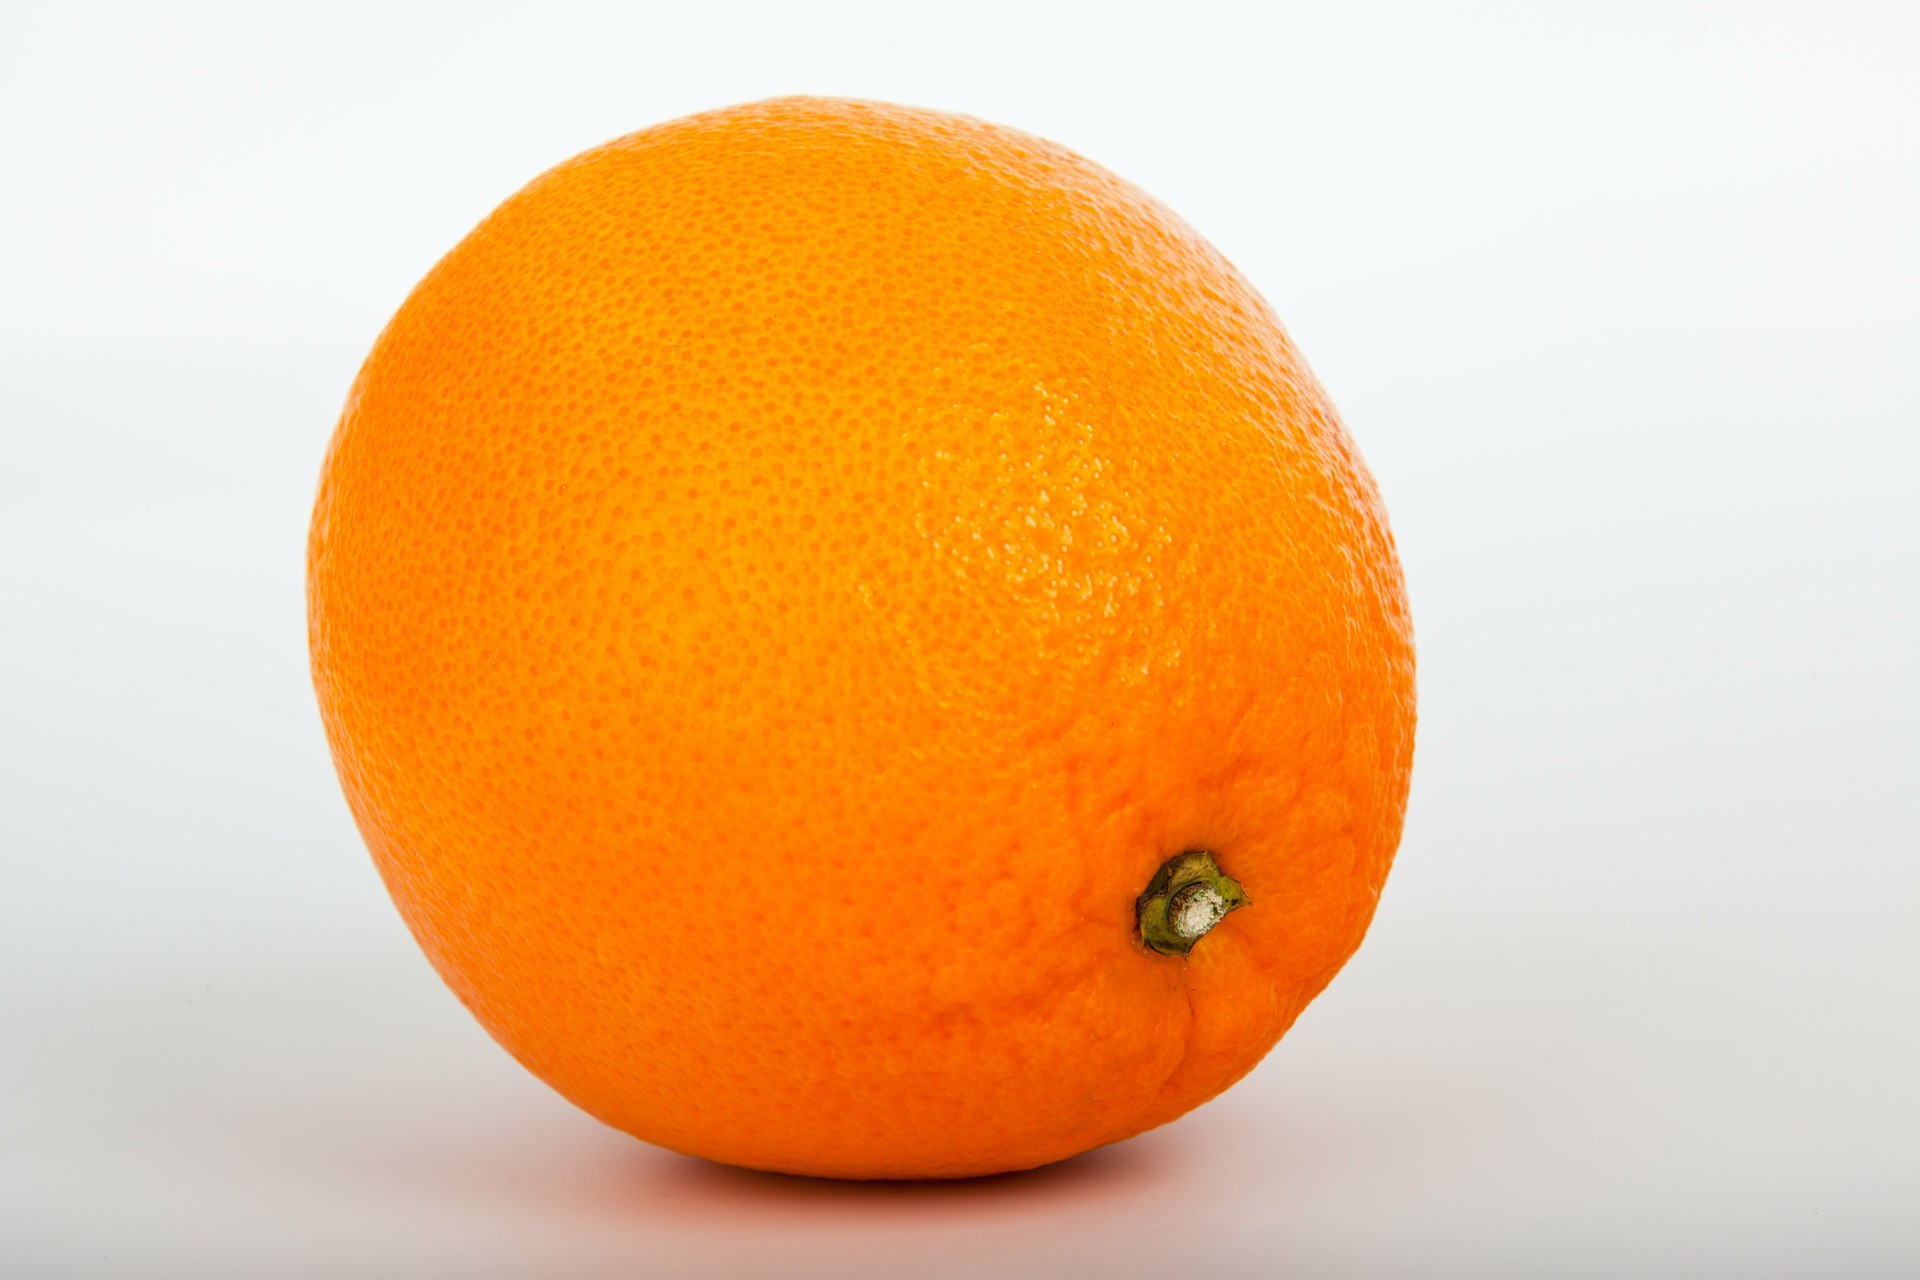 Morocco's orange exports are expected to reach around 120,500 tons in the 2016/17 marketing year – up 29% from 92,246 tons in 2015/16 – as increased availability allows it to meet growing demand from Russia and the EU, according to a new GAIN report.